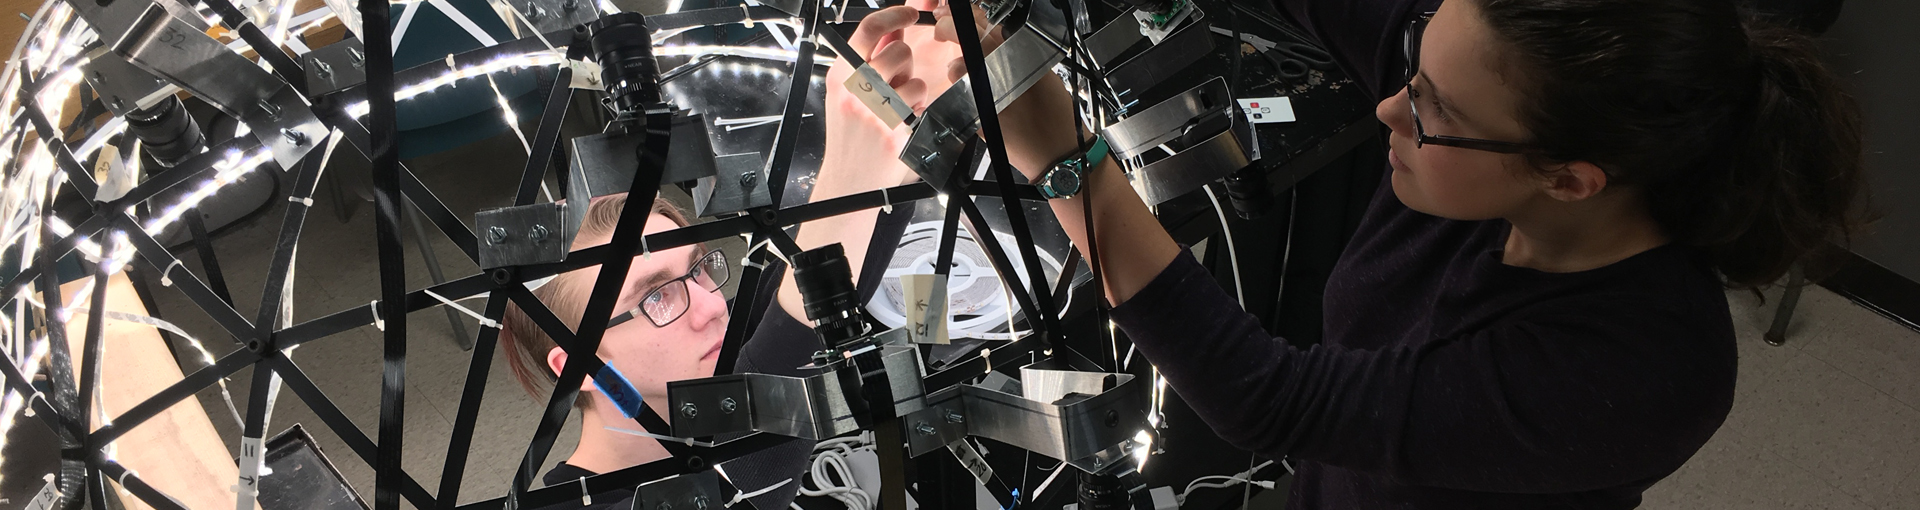 two female students working on dome-shaped imaging system